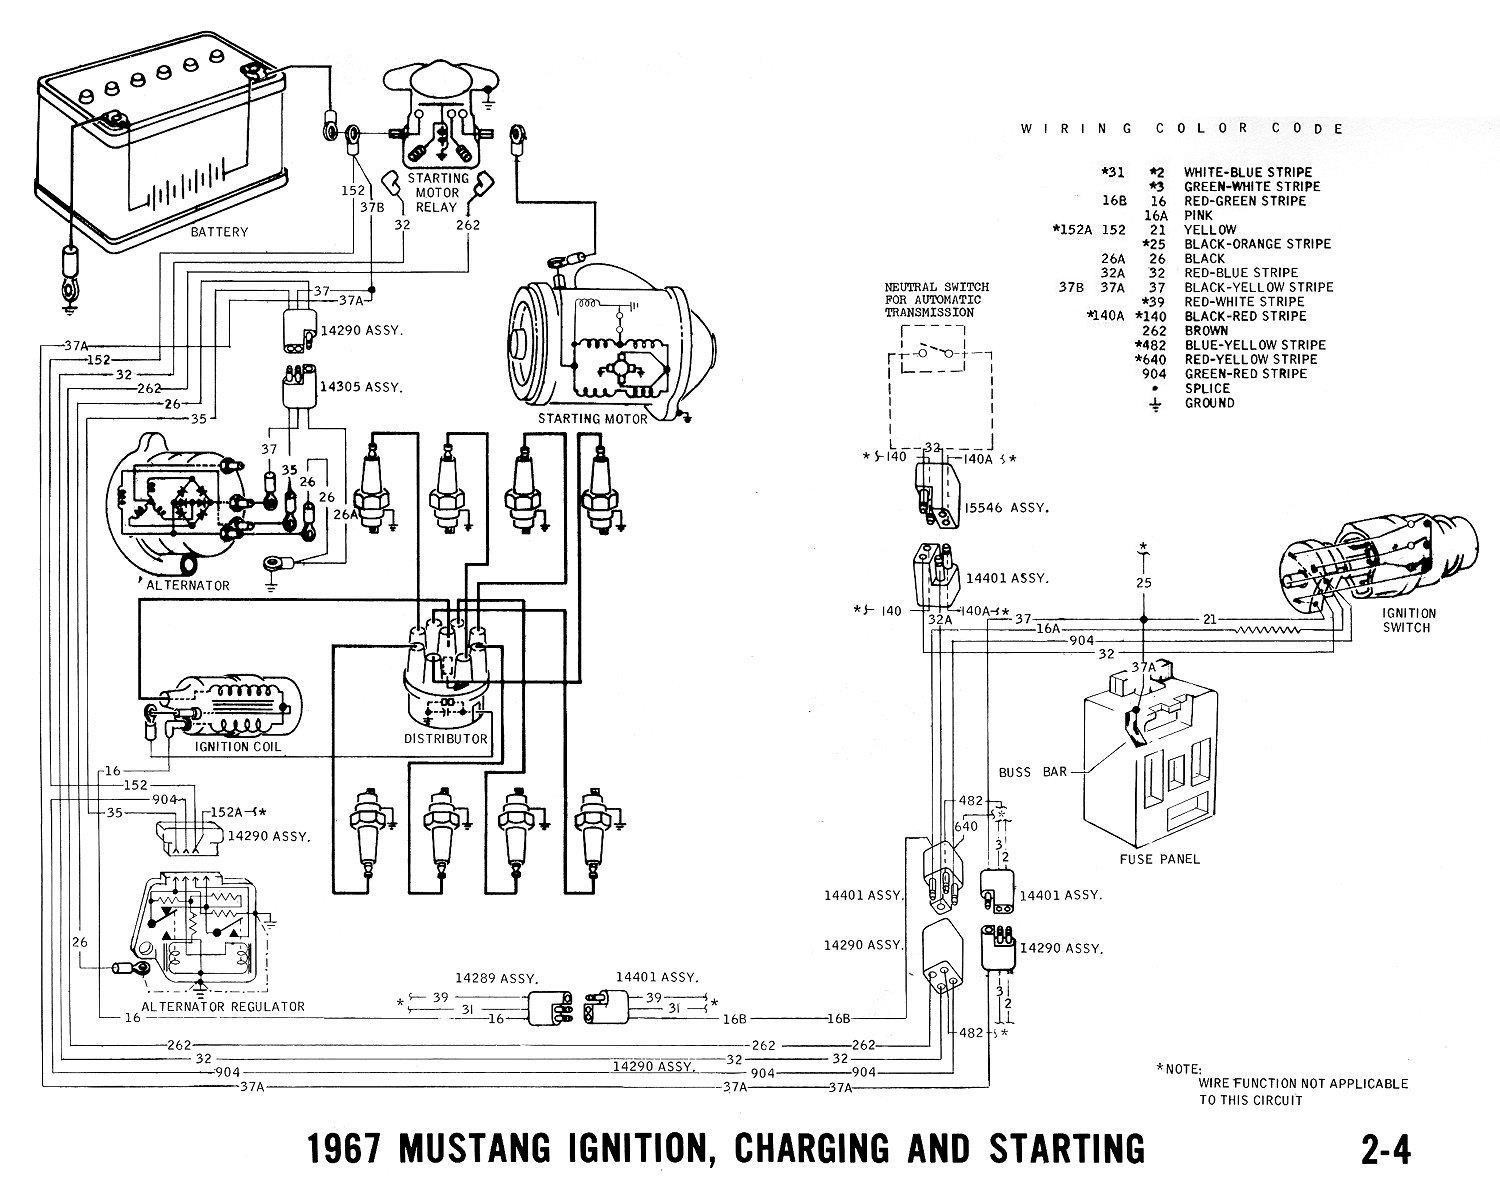 2001 ford mustang fuel system diagram best wiring library rh 84 princestaash org